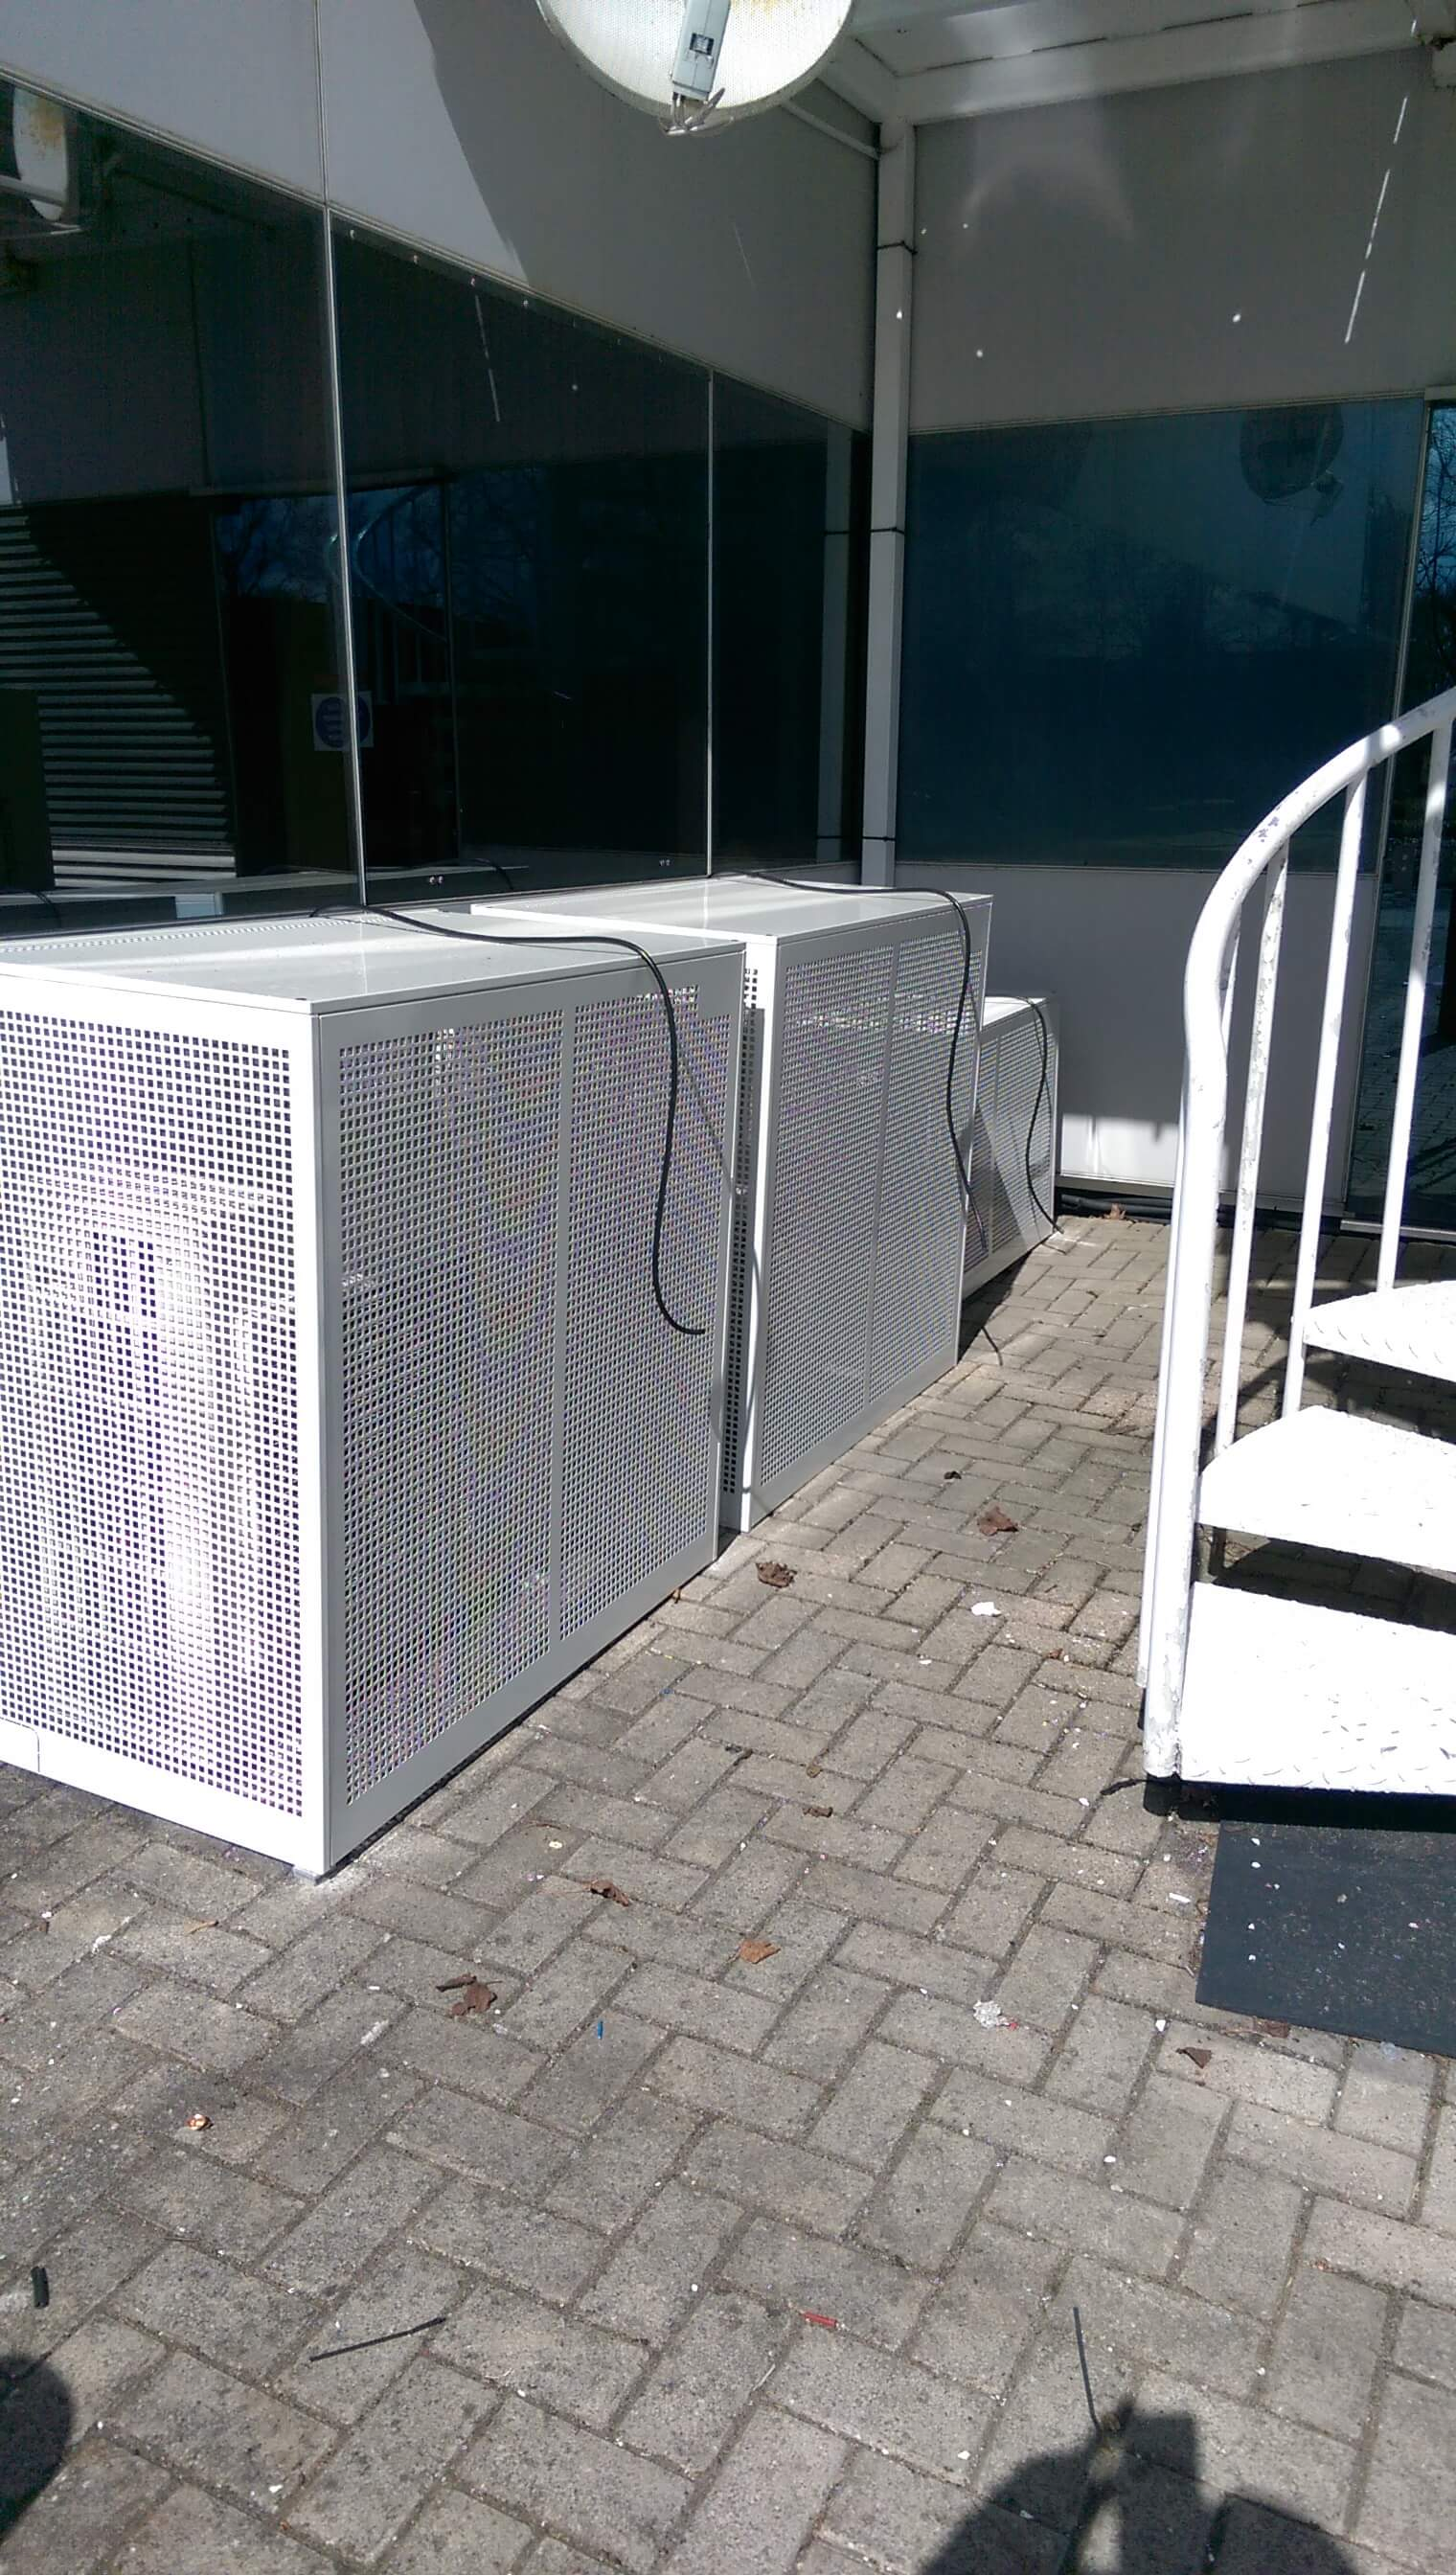 Air conditioning outdoor cages for security.